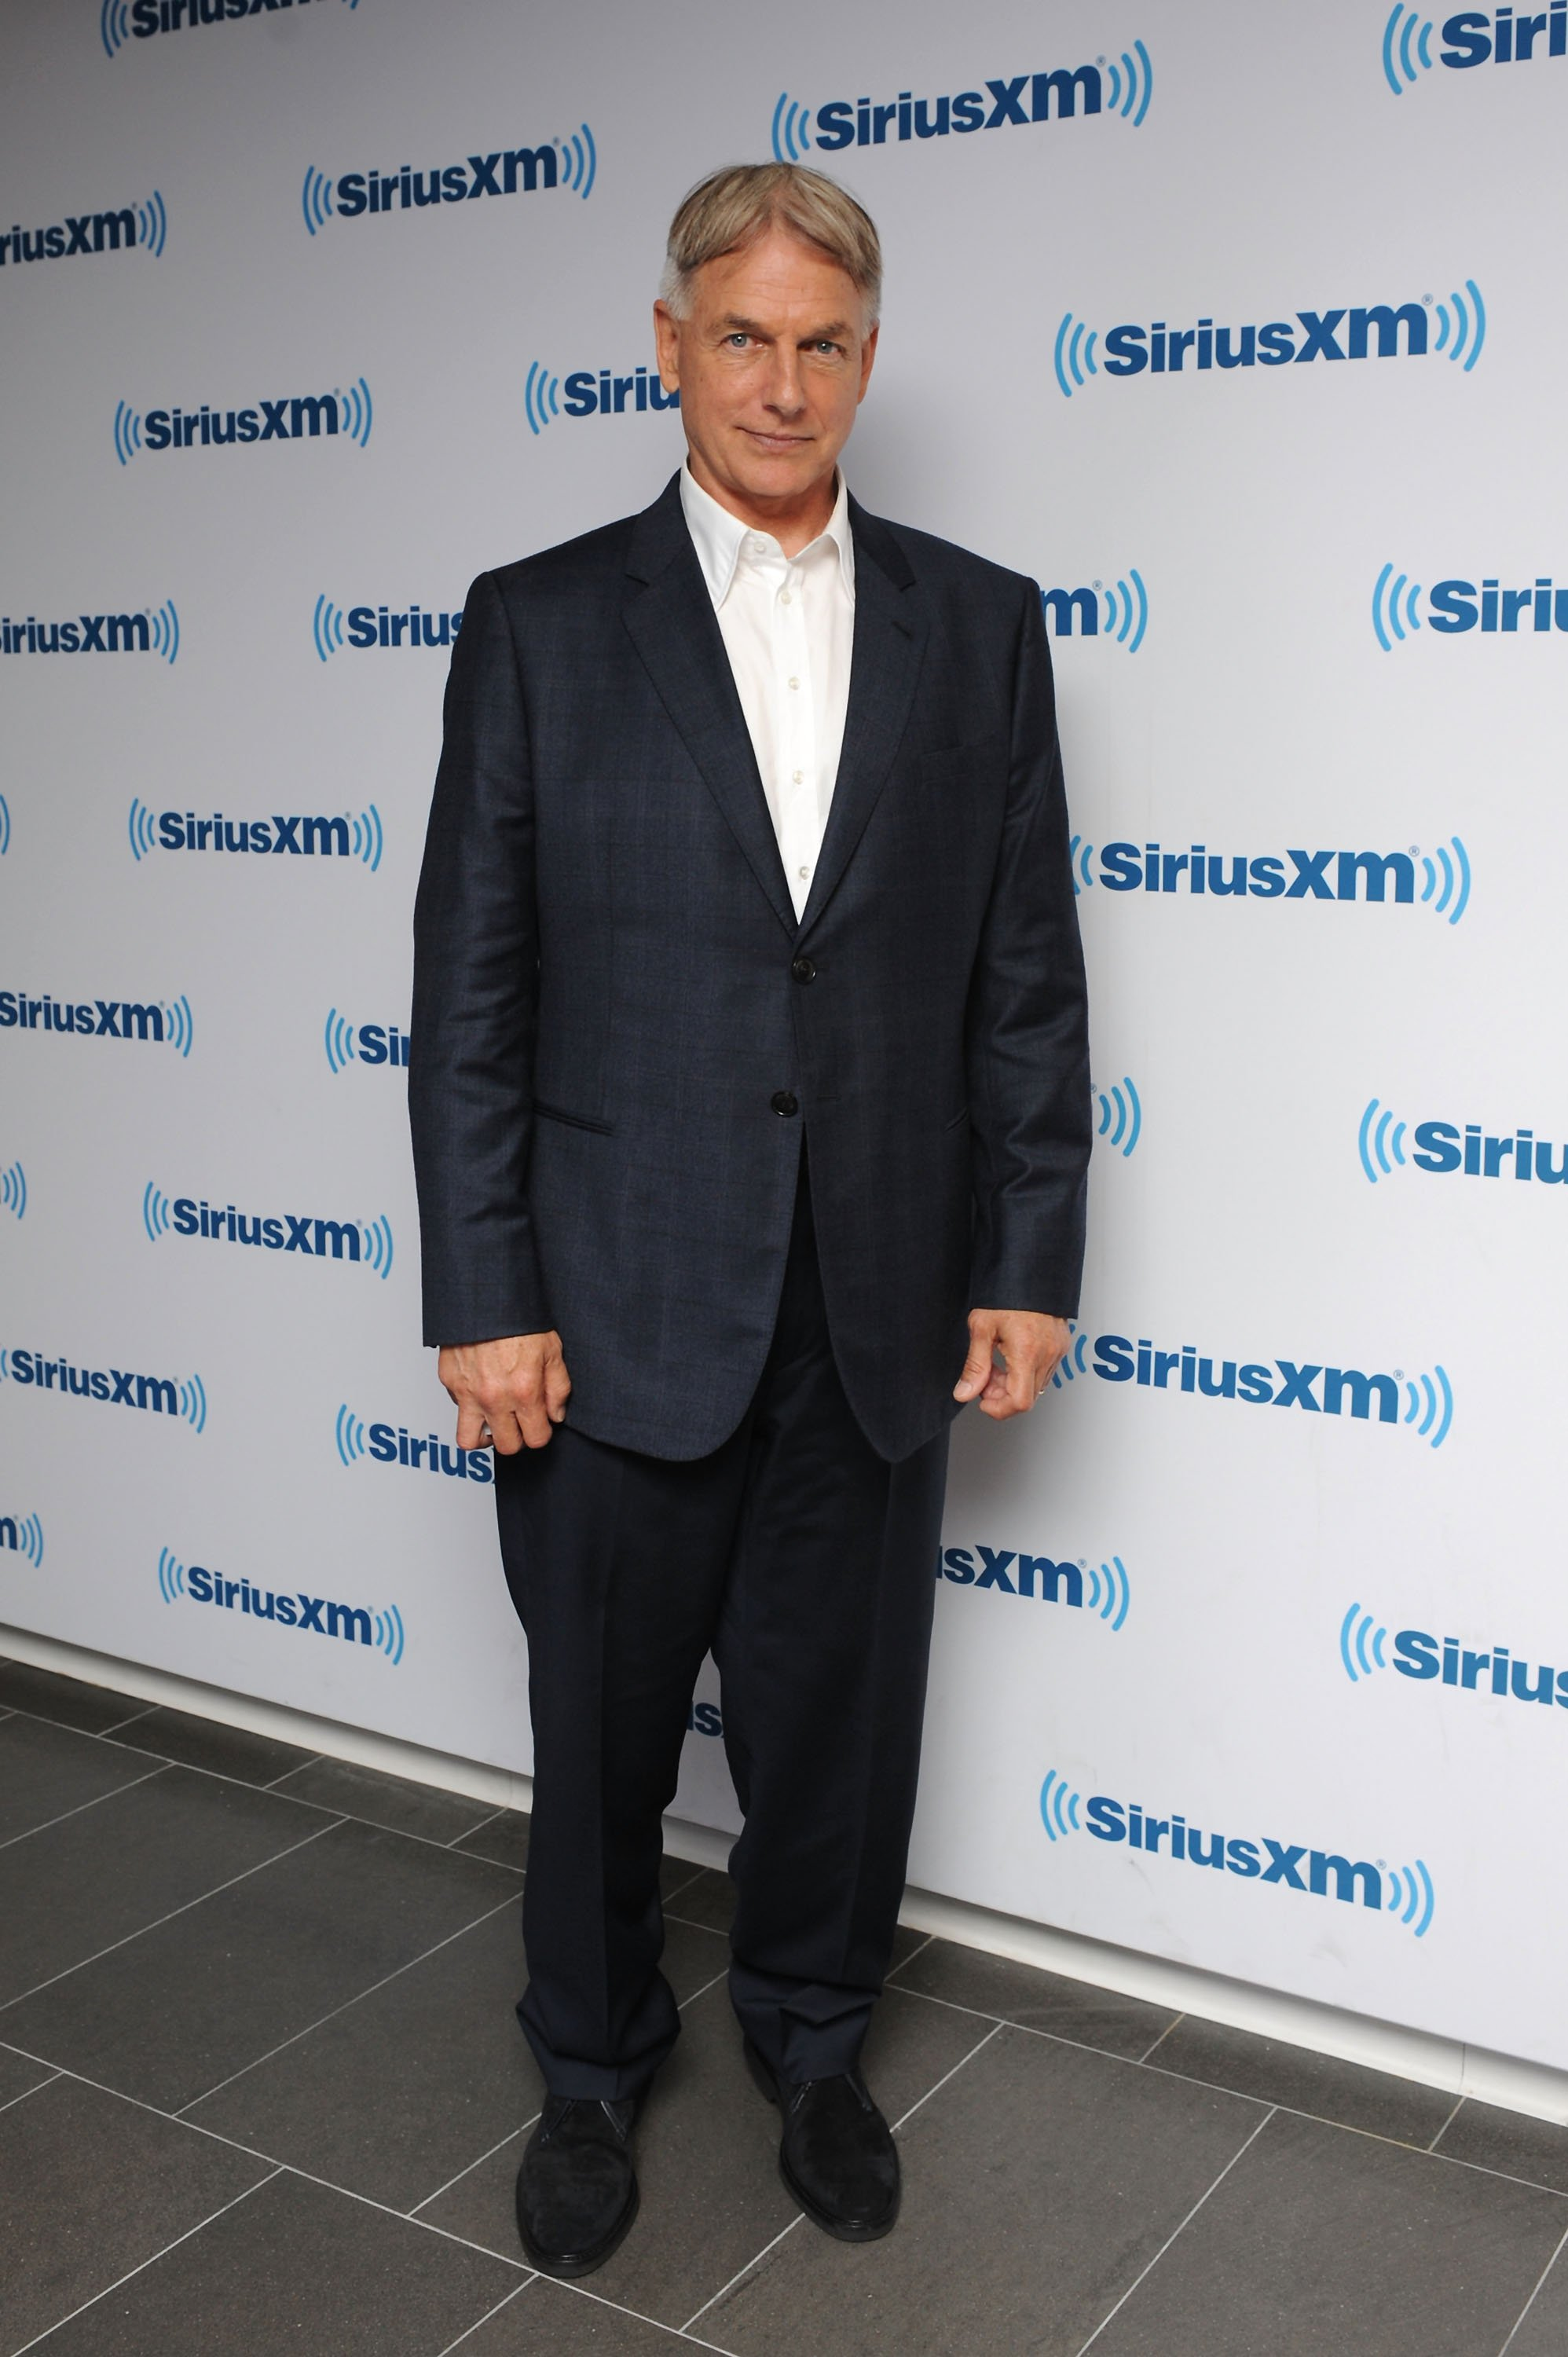 Mark Harmon besucht SiriusXM Studios am 22. September 2014 in New York City | Quelle: Getty Images